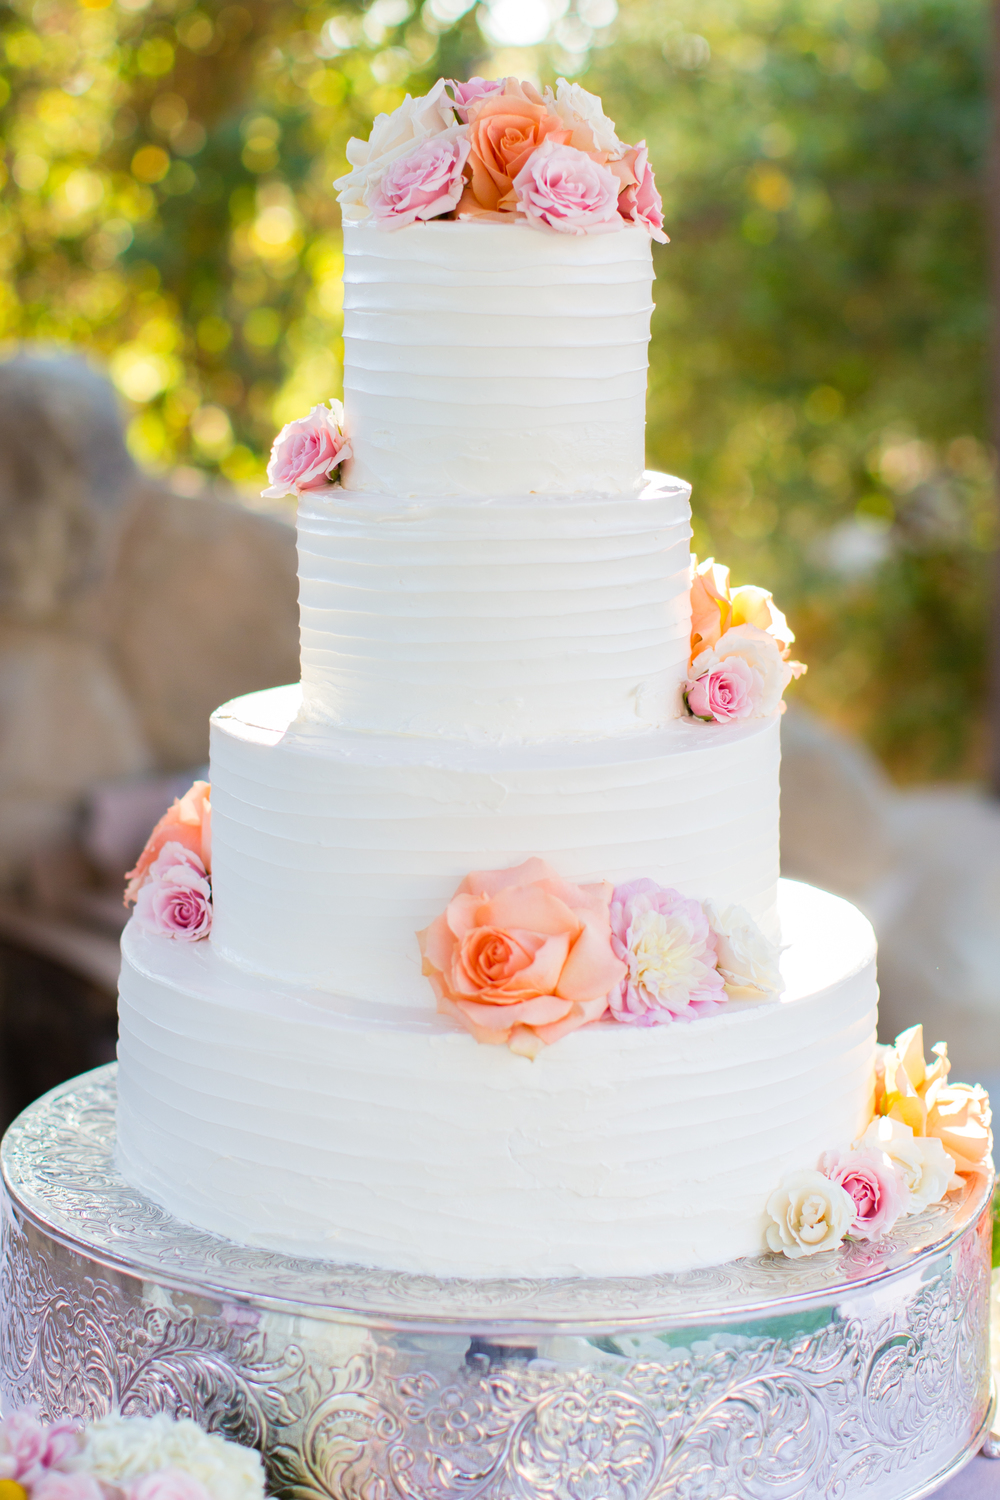 wedding-cake-ventura-ca-pinterest-white-textured-butter-cream-frosting-fresh-flowers